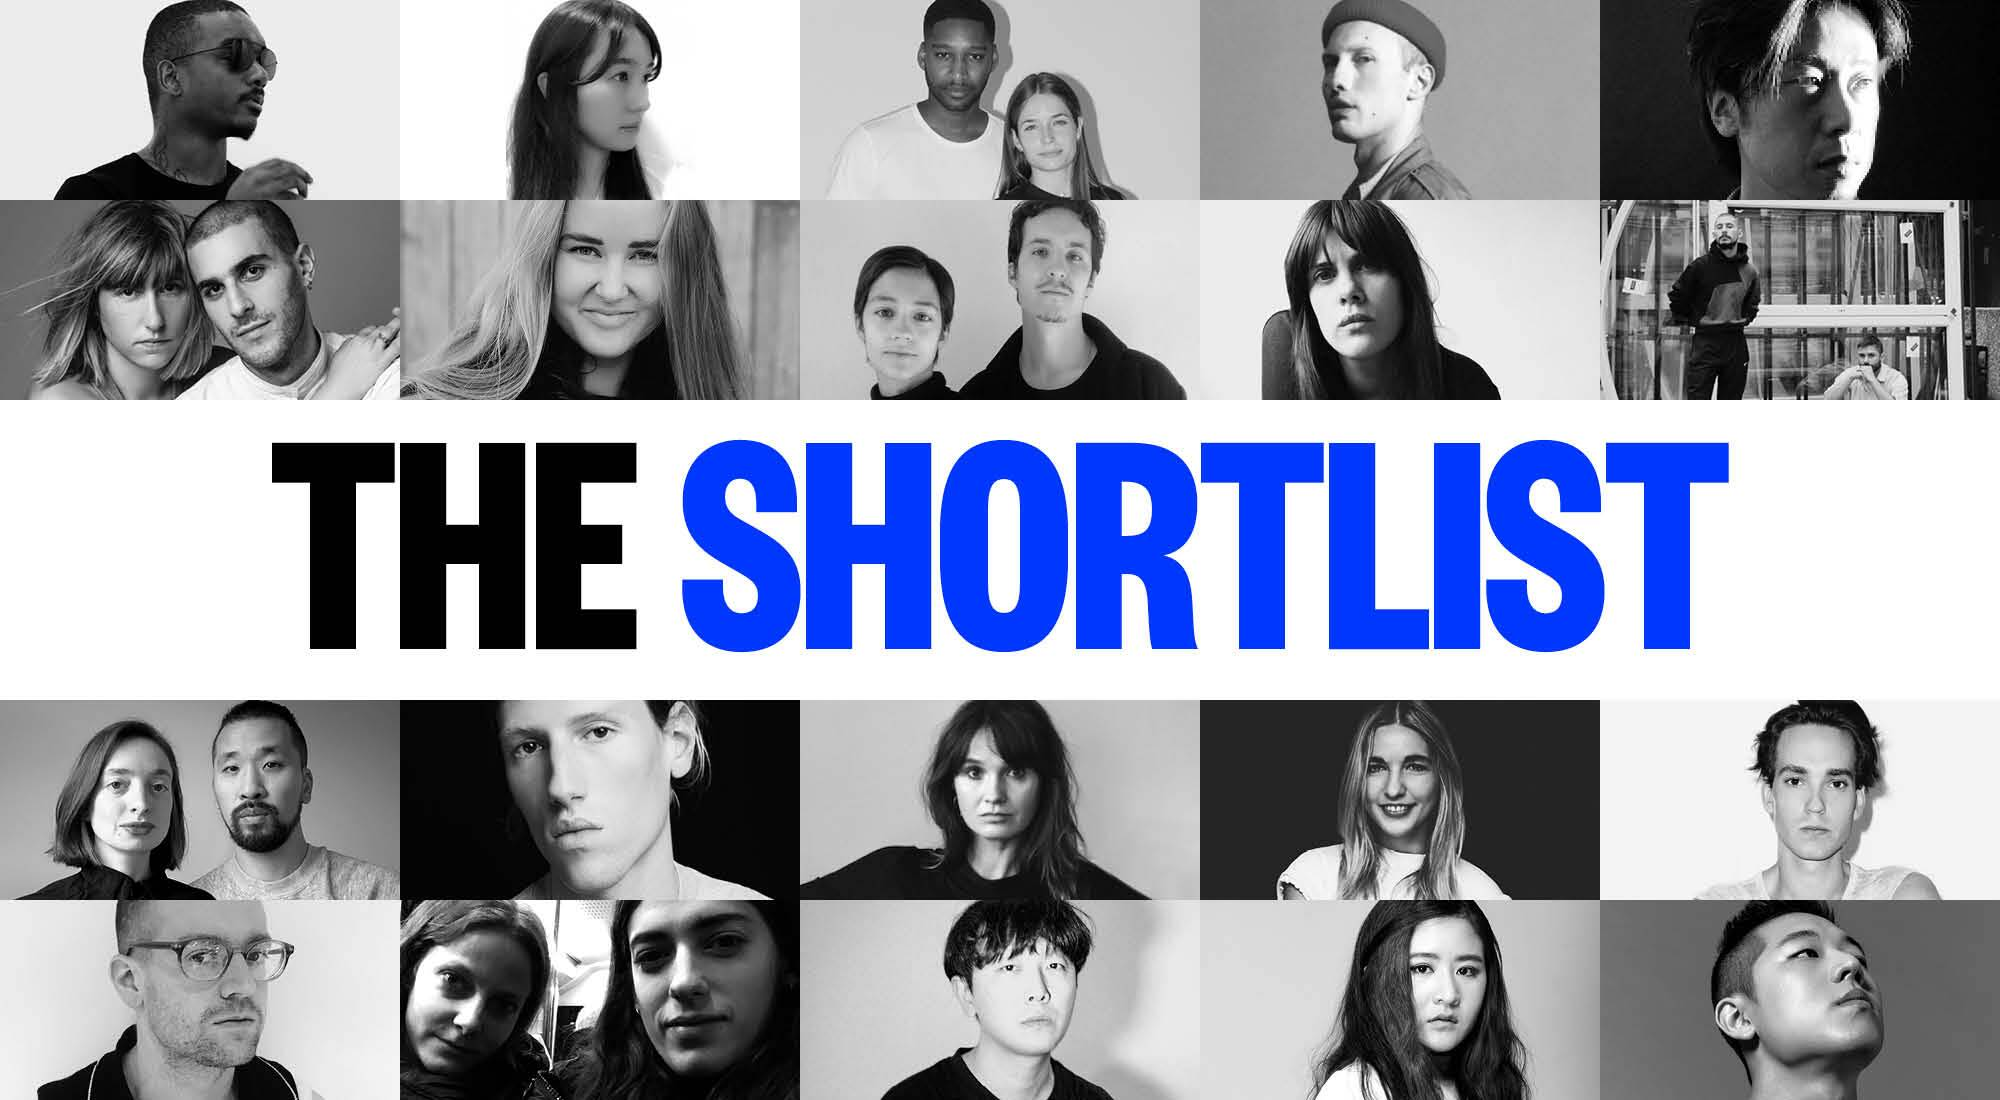 Lvmh Prize 2018 For Young Fashion Designers Lvmh Reveals The List Of The 20 Designers Shortlisted For The Semi Final Lvmh